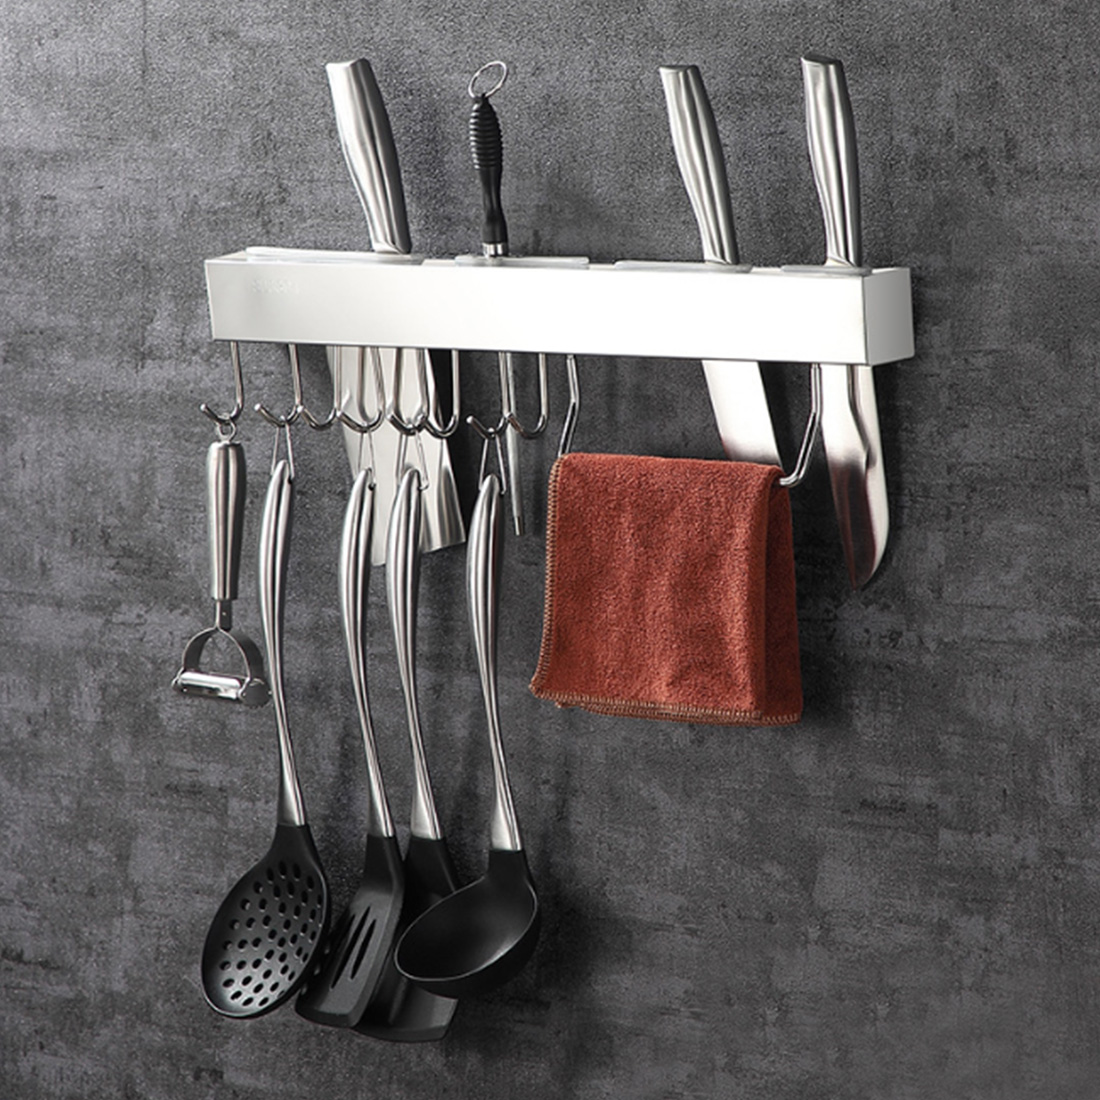 Storage Wall Mounted Kitchen Racks Stainless Steel Punching Free Cutter Slot Accessories Slice Hook Pot Holder Durable